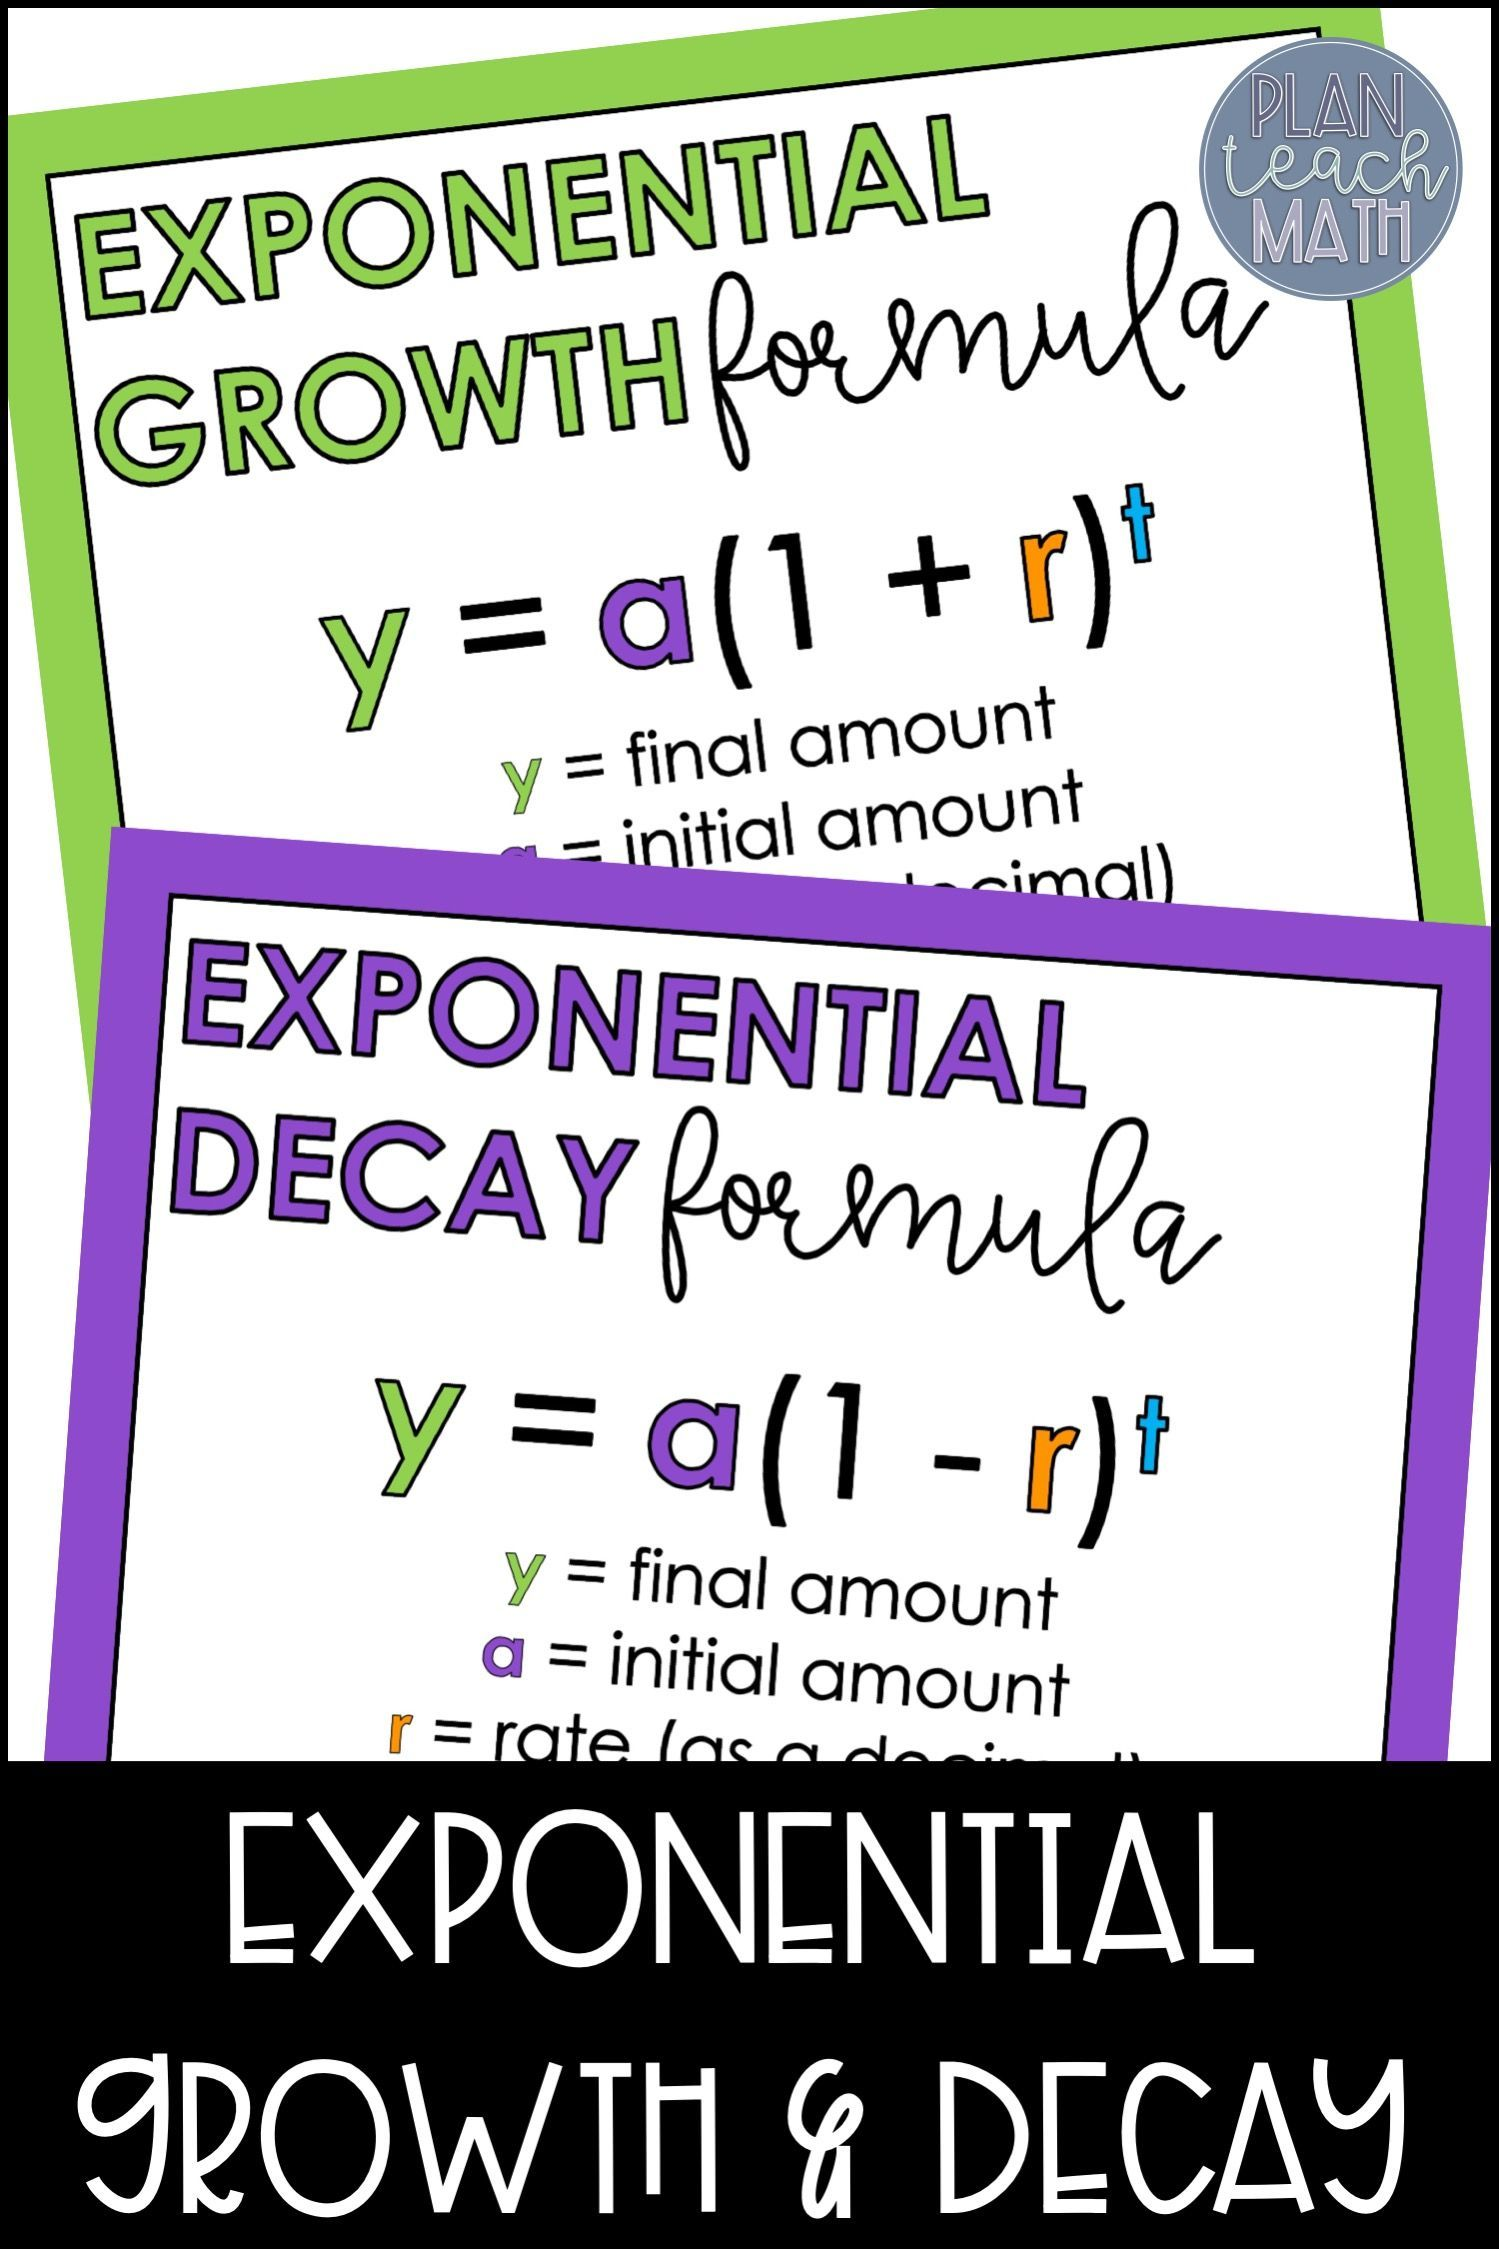 Exponential Growth And Decay Posters And Reference Sheets